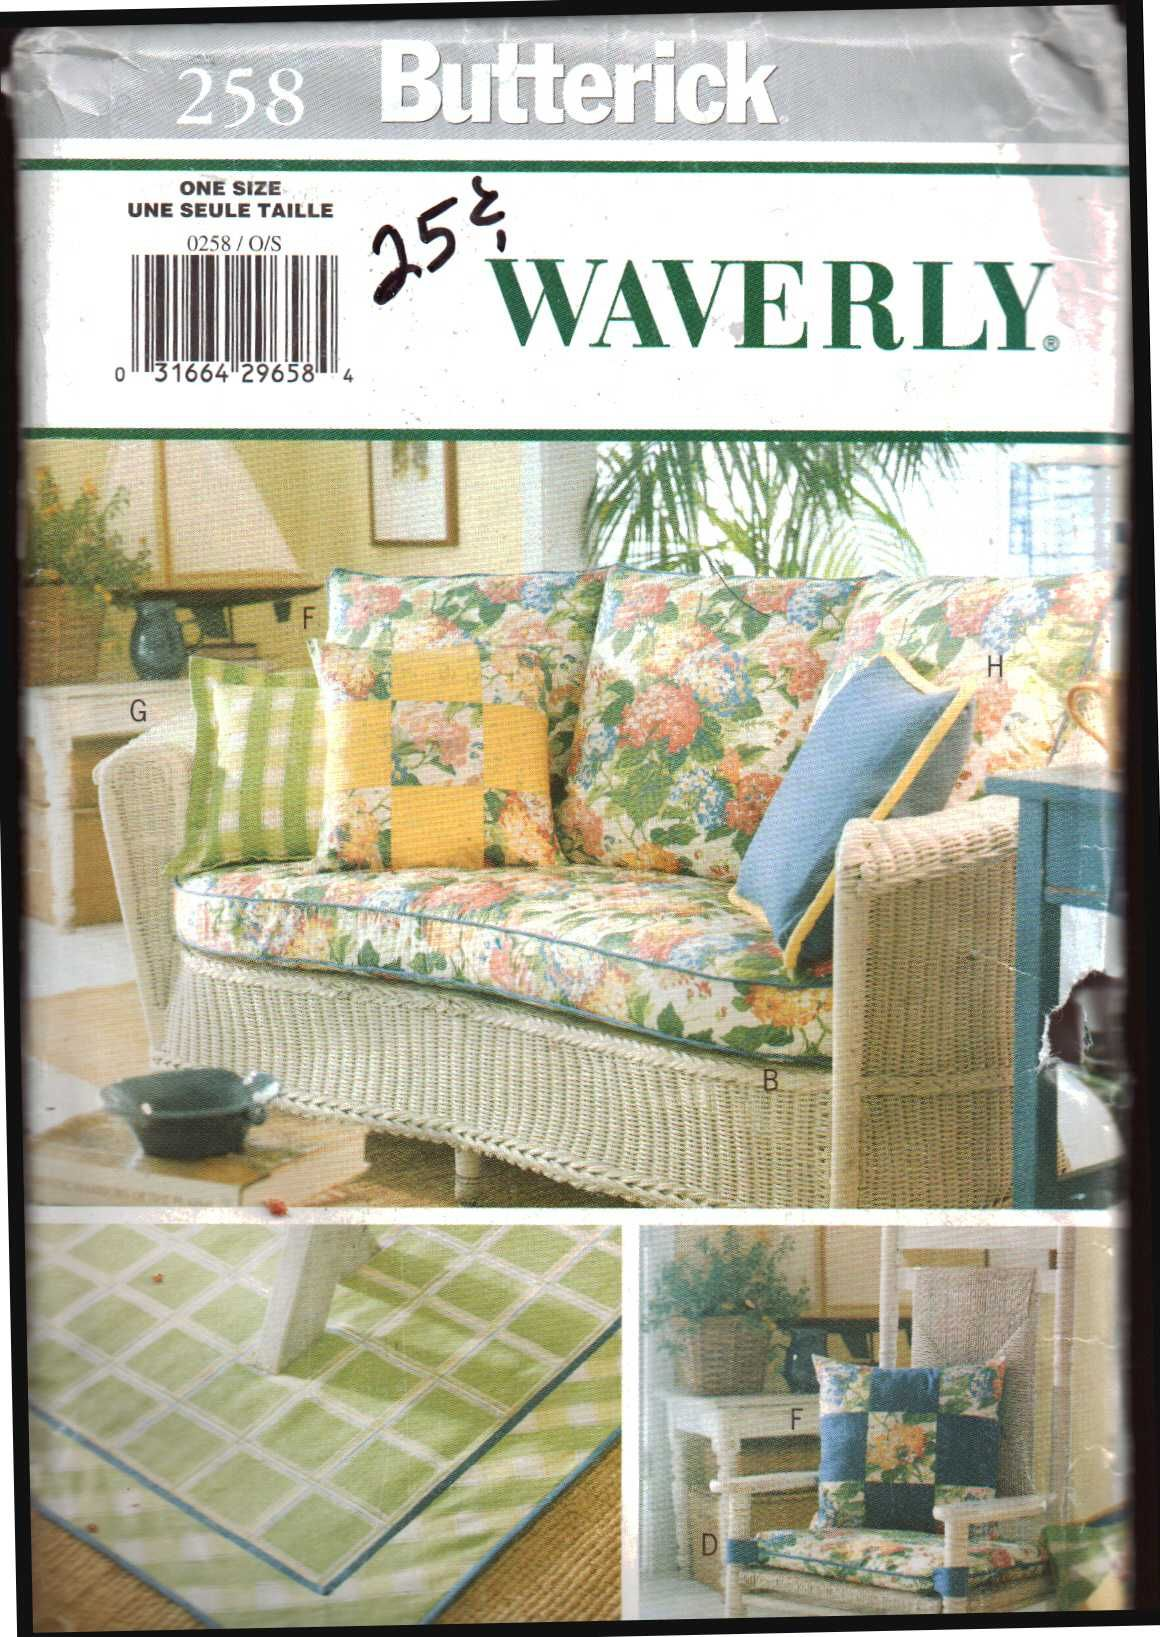 Butterick 258 Waverly Sunroom Decor   Rug, Sofa Cushion Covers, Chair  Cushion, Pillows